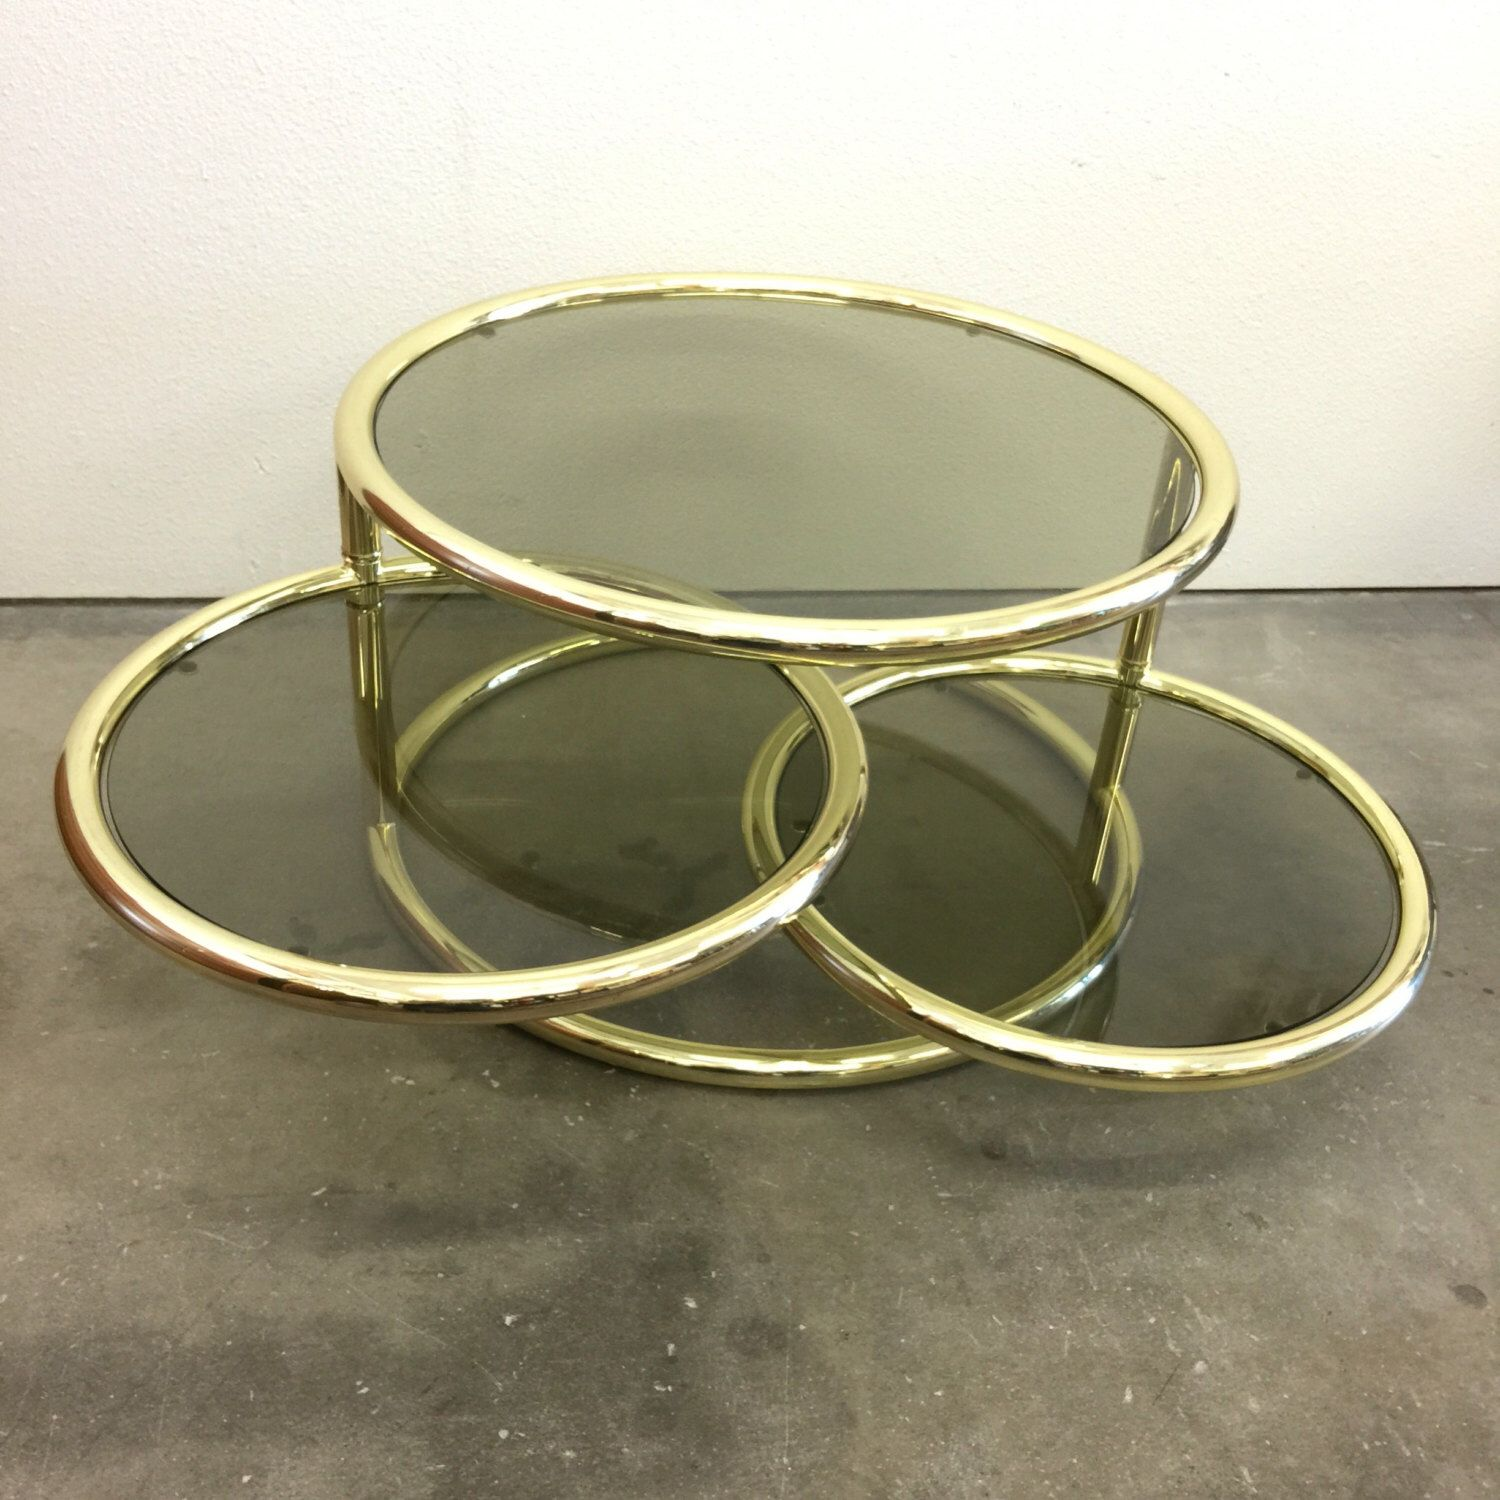 Brass And Glass Coffee Table Small Round Coffee Table Hollywood Regency Furniture Swiveling Coffee Table Gold Glass Coffee Table Gold Glass Coffee Table Glass Coffee Table Coffee Table [ 1500 x 1500 Pixel ]